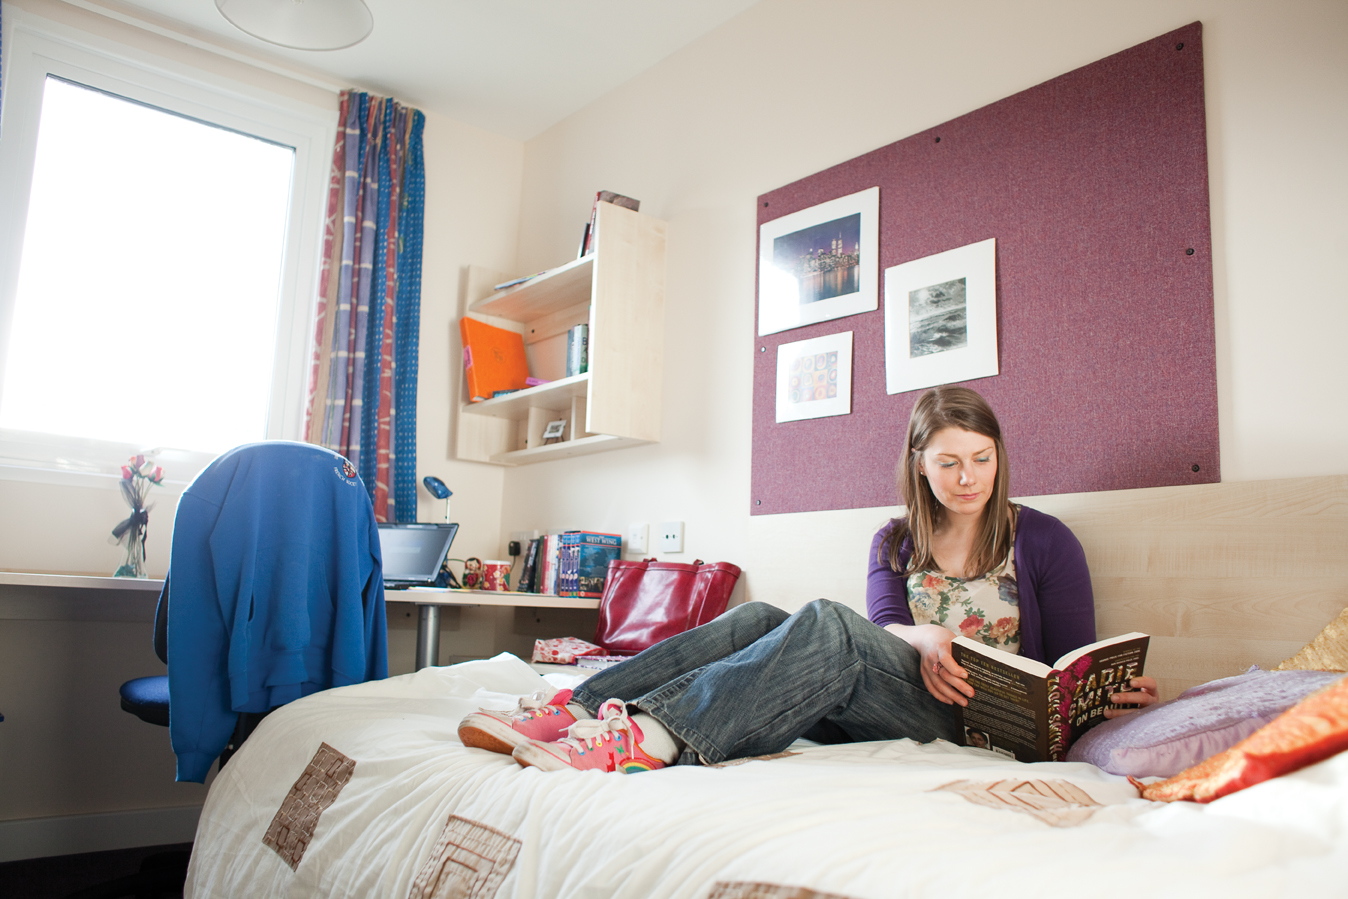 Finding Student Accommodation